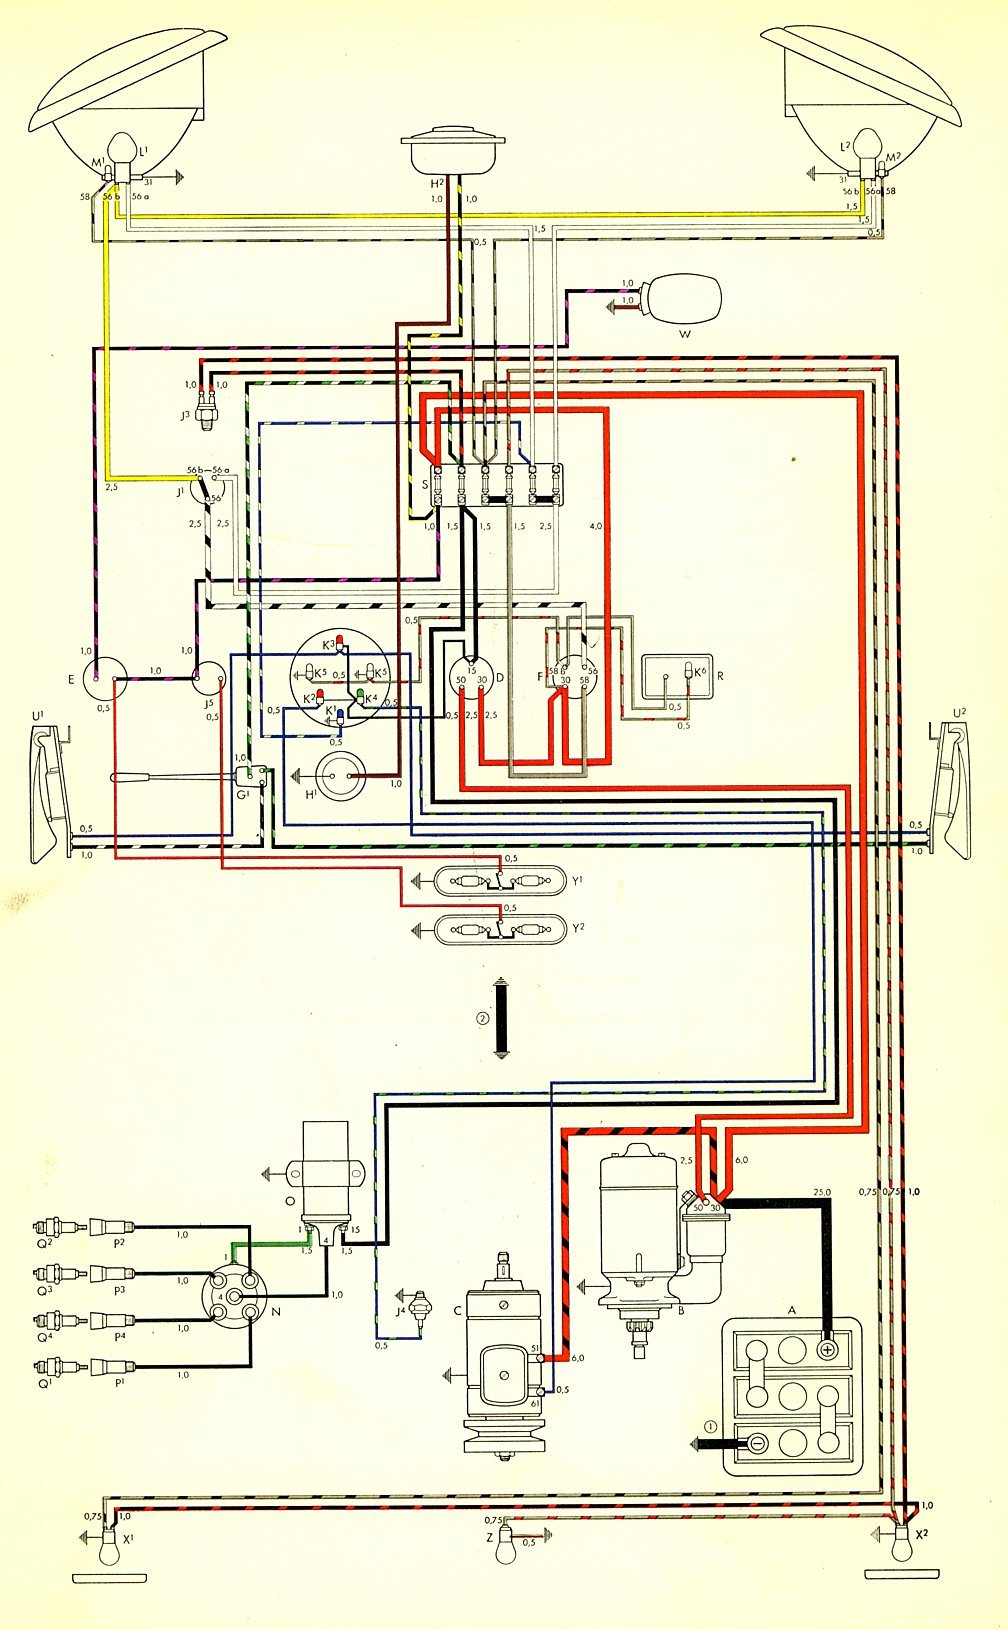 thesamba com type 2 wiring diagrams rh thesamba com 1973 vw bus wiring diagram 1965 vw bus wiring diagram